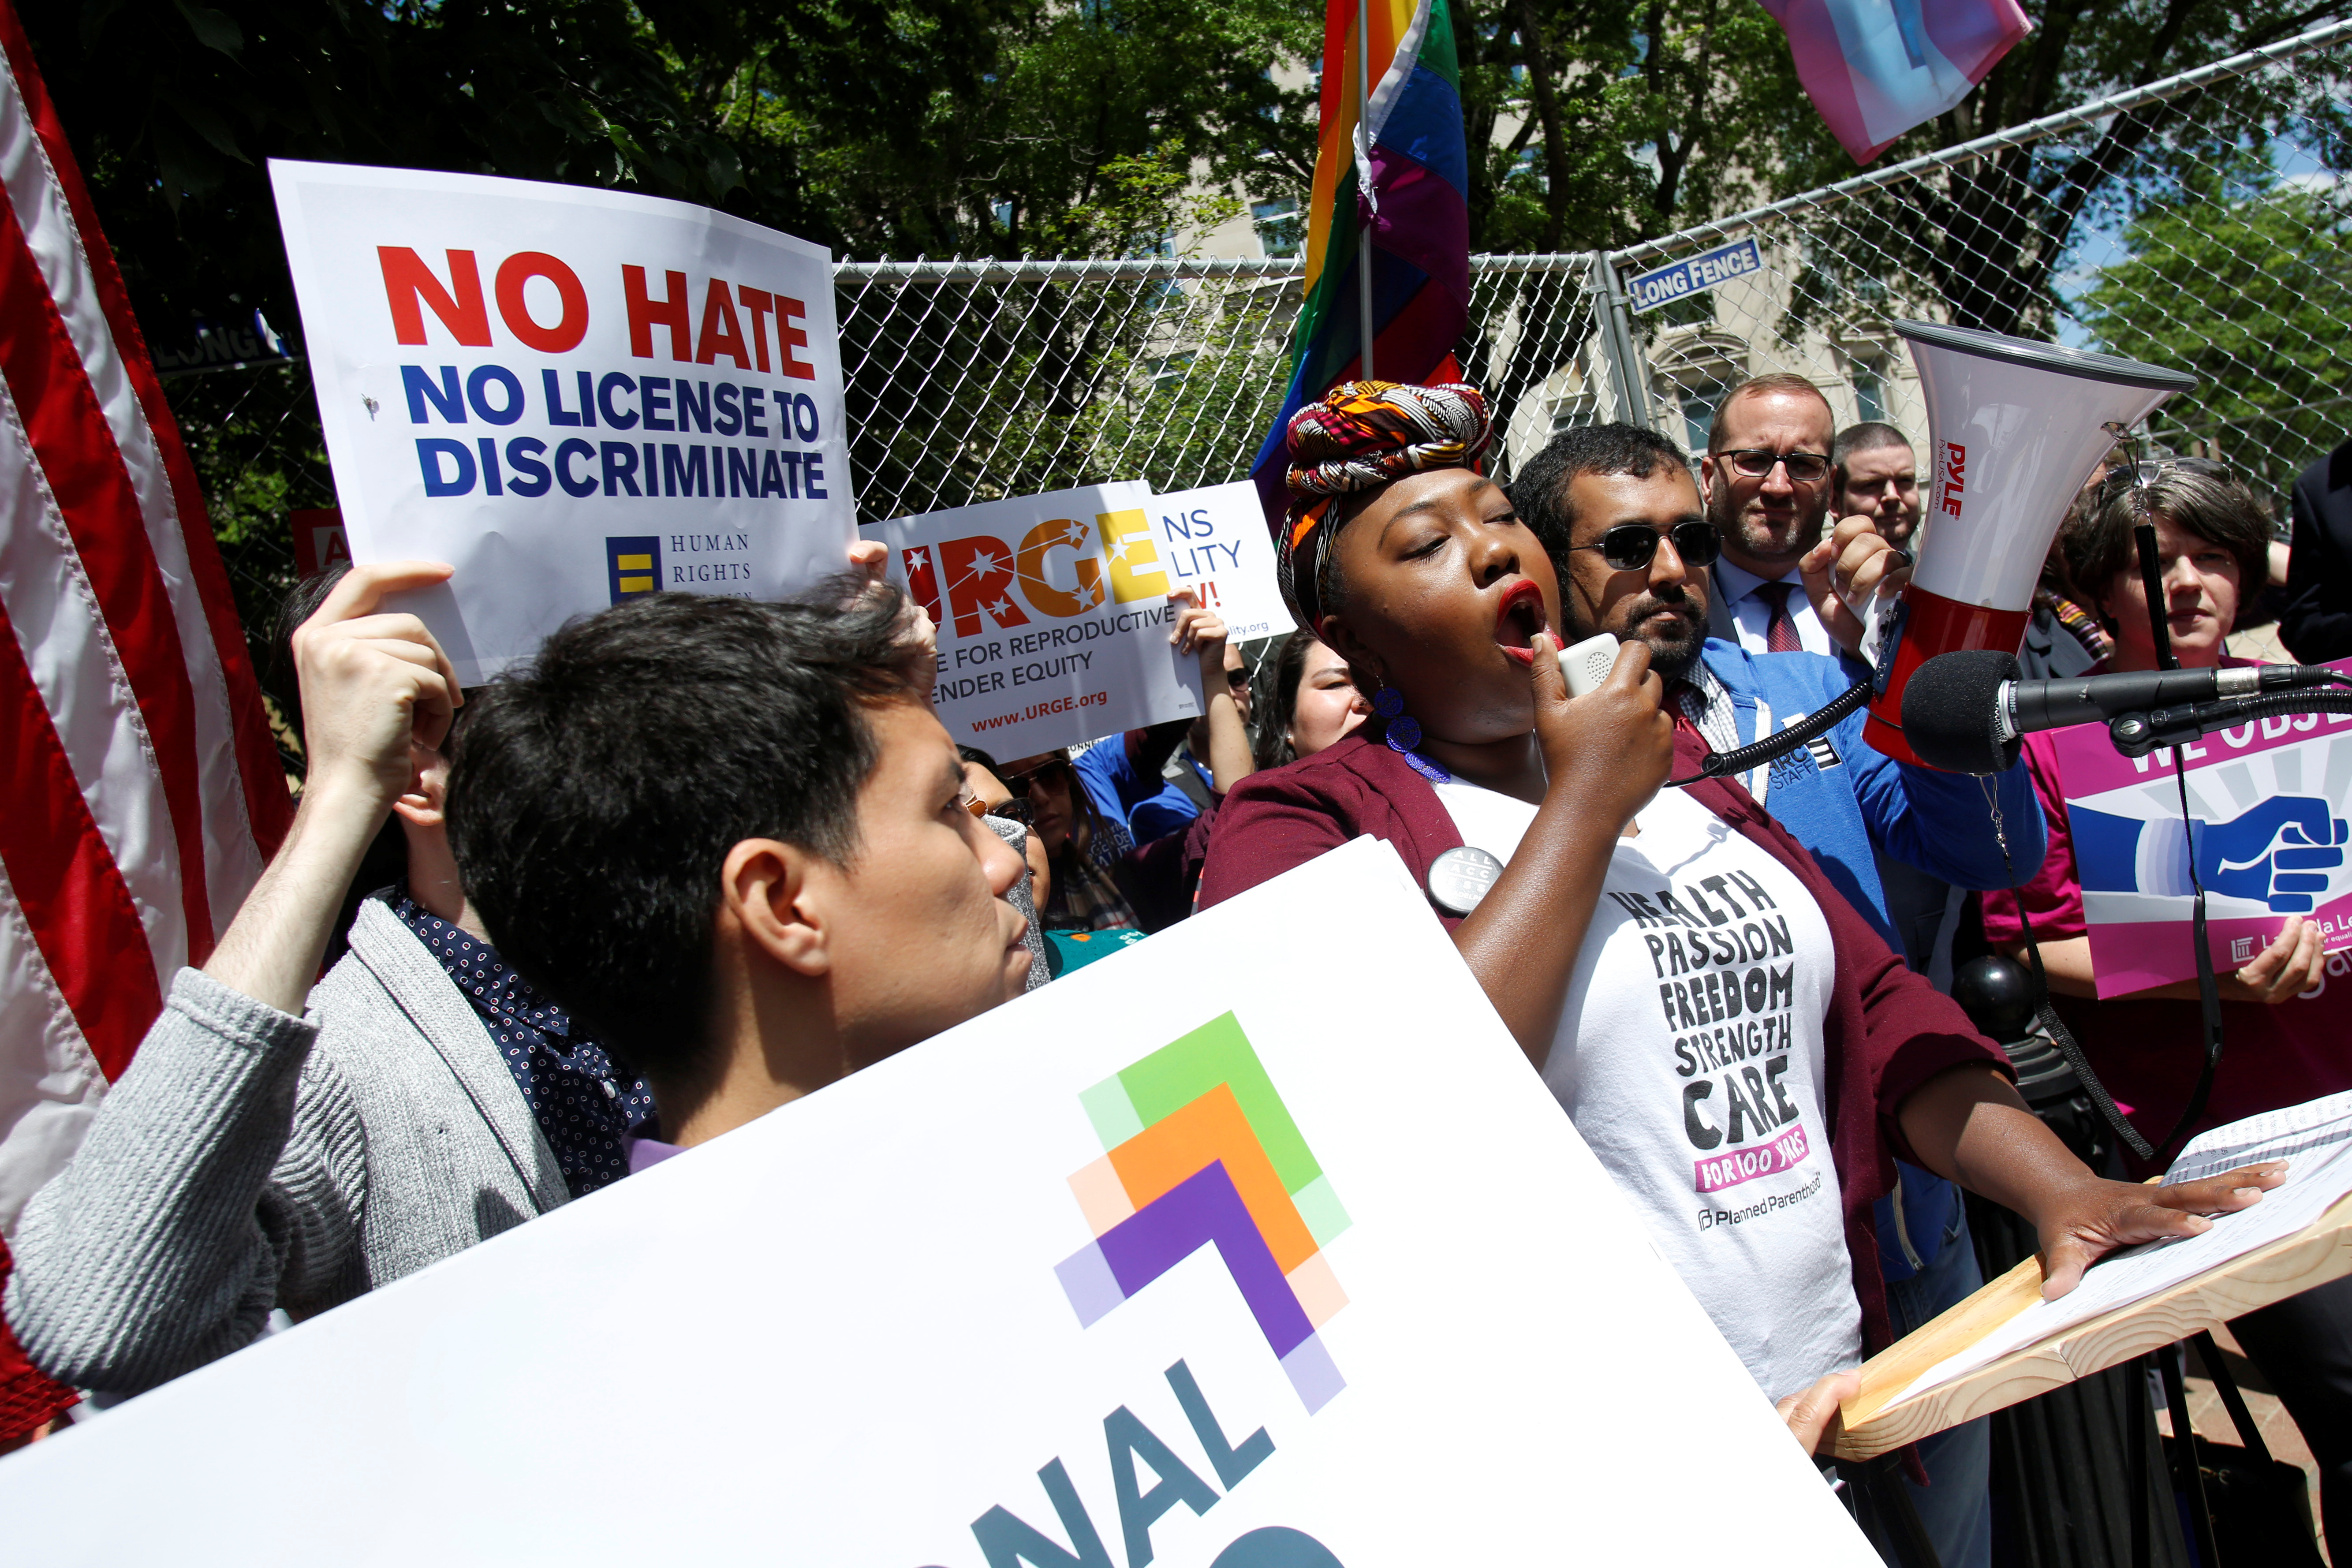 LGBT groups rally to oppose the religious freedom executive order that U.S. President Donald Trump Trump is expected to sign, outside the White House in Washington, May 3, 2017.